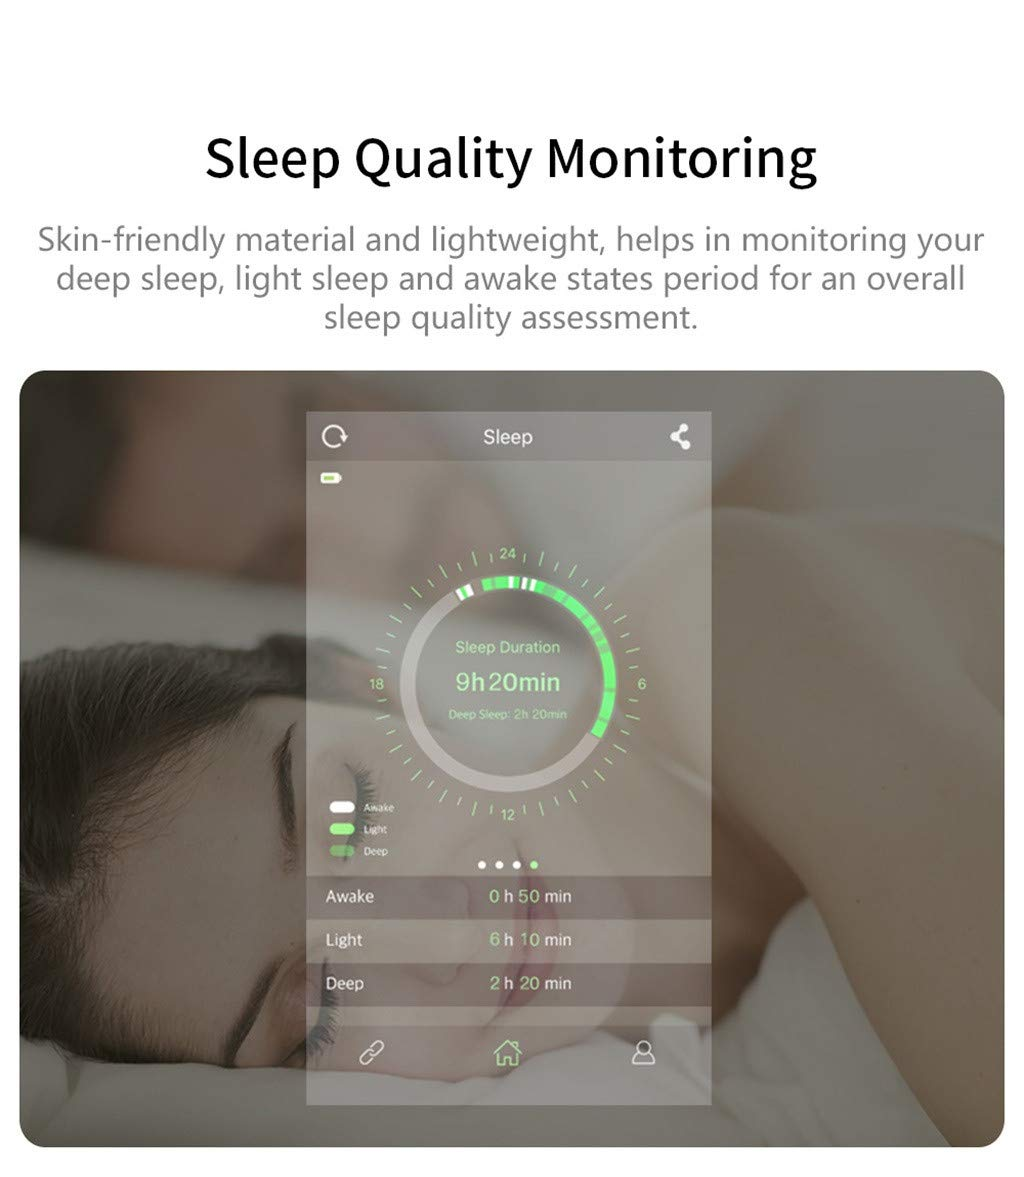 For iOS Android, Waterproof Sport Smart Watch Fitness Activity Blood Pressure Heart Rate Sleep Monitoring Smart Bracelet (D) by YNAA (Image #3)